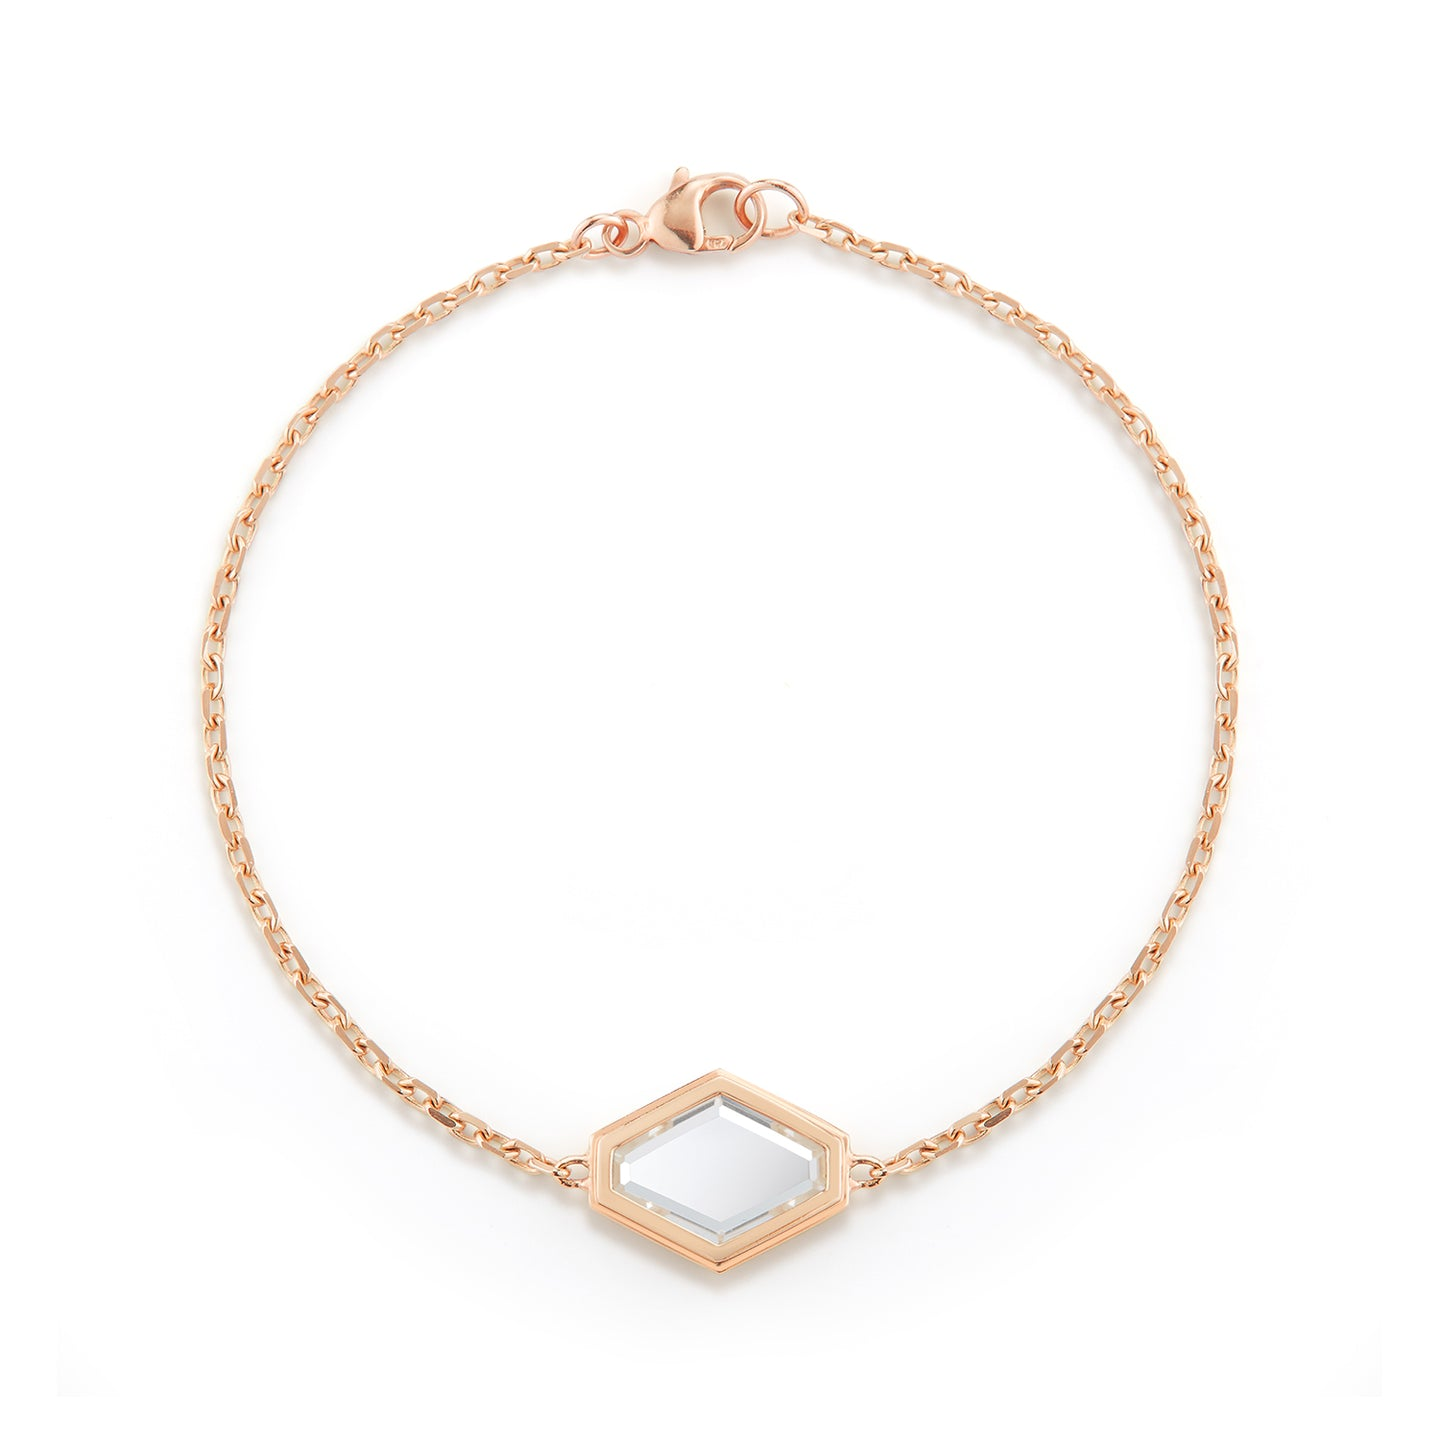 BELL 18K ROSE GOLD ROCK CRYSTAL HEXAGON BRACELET